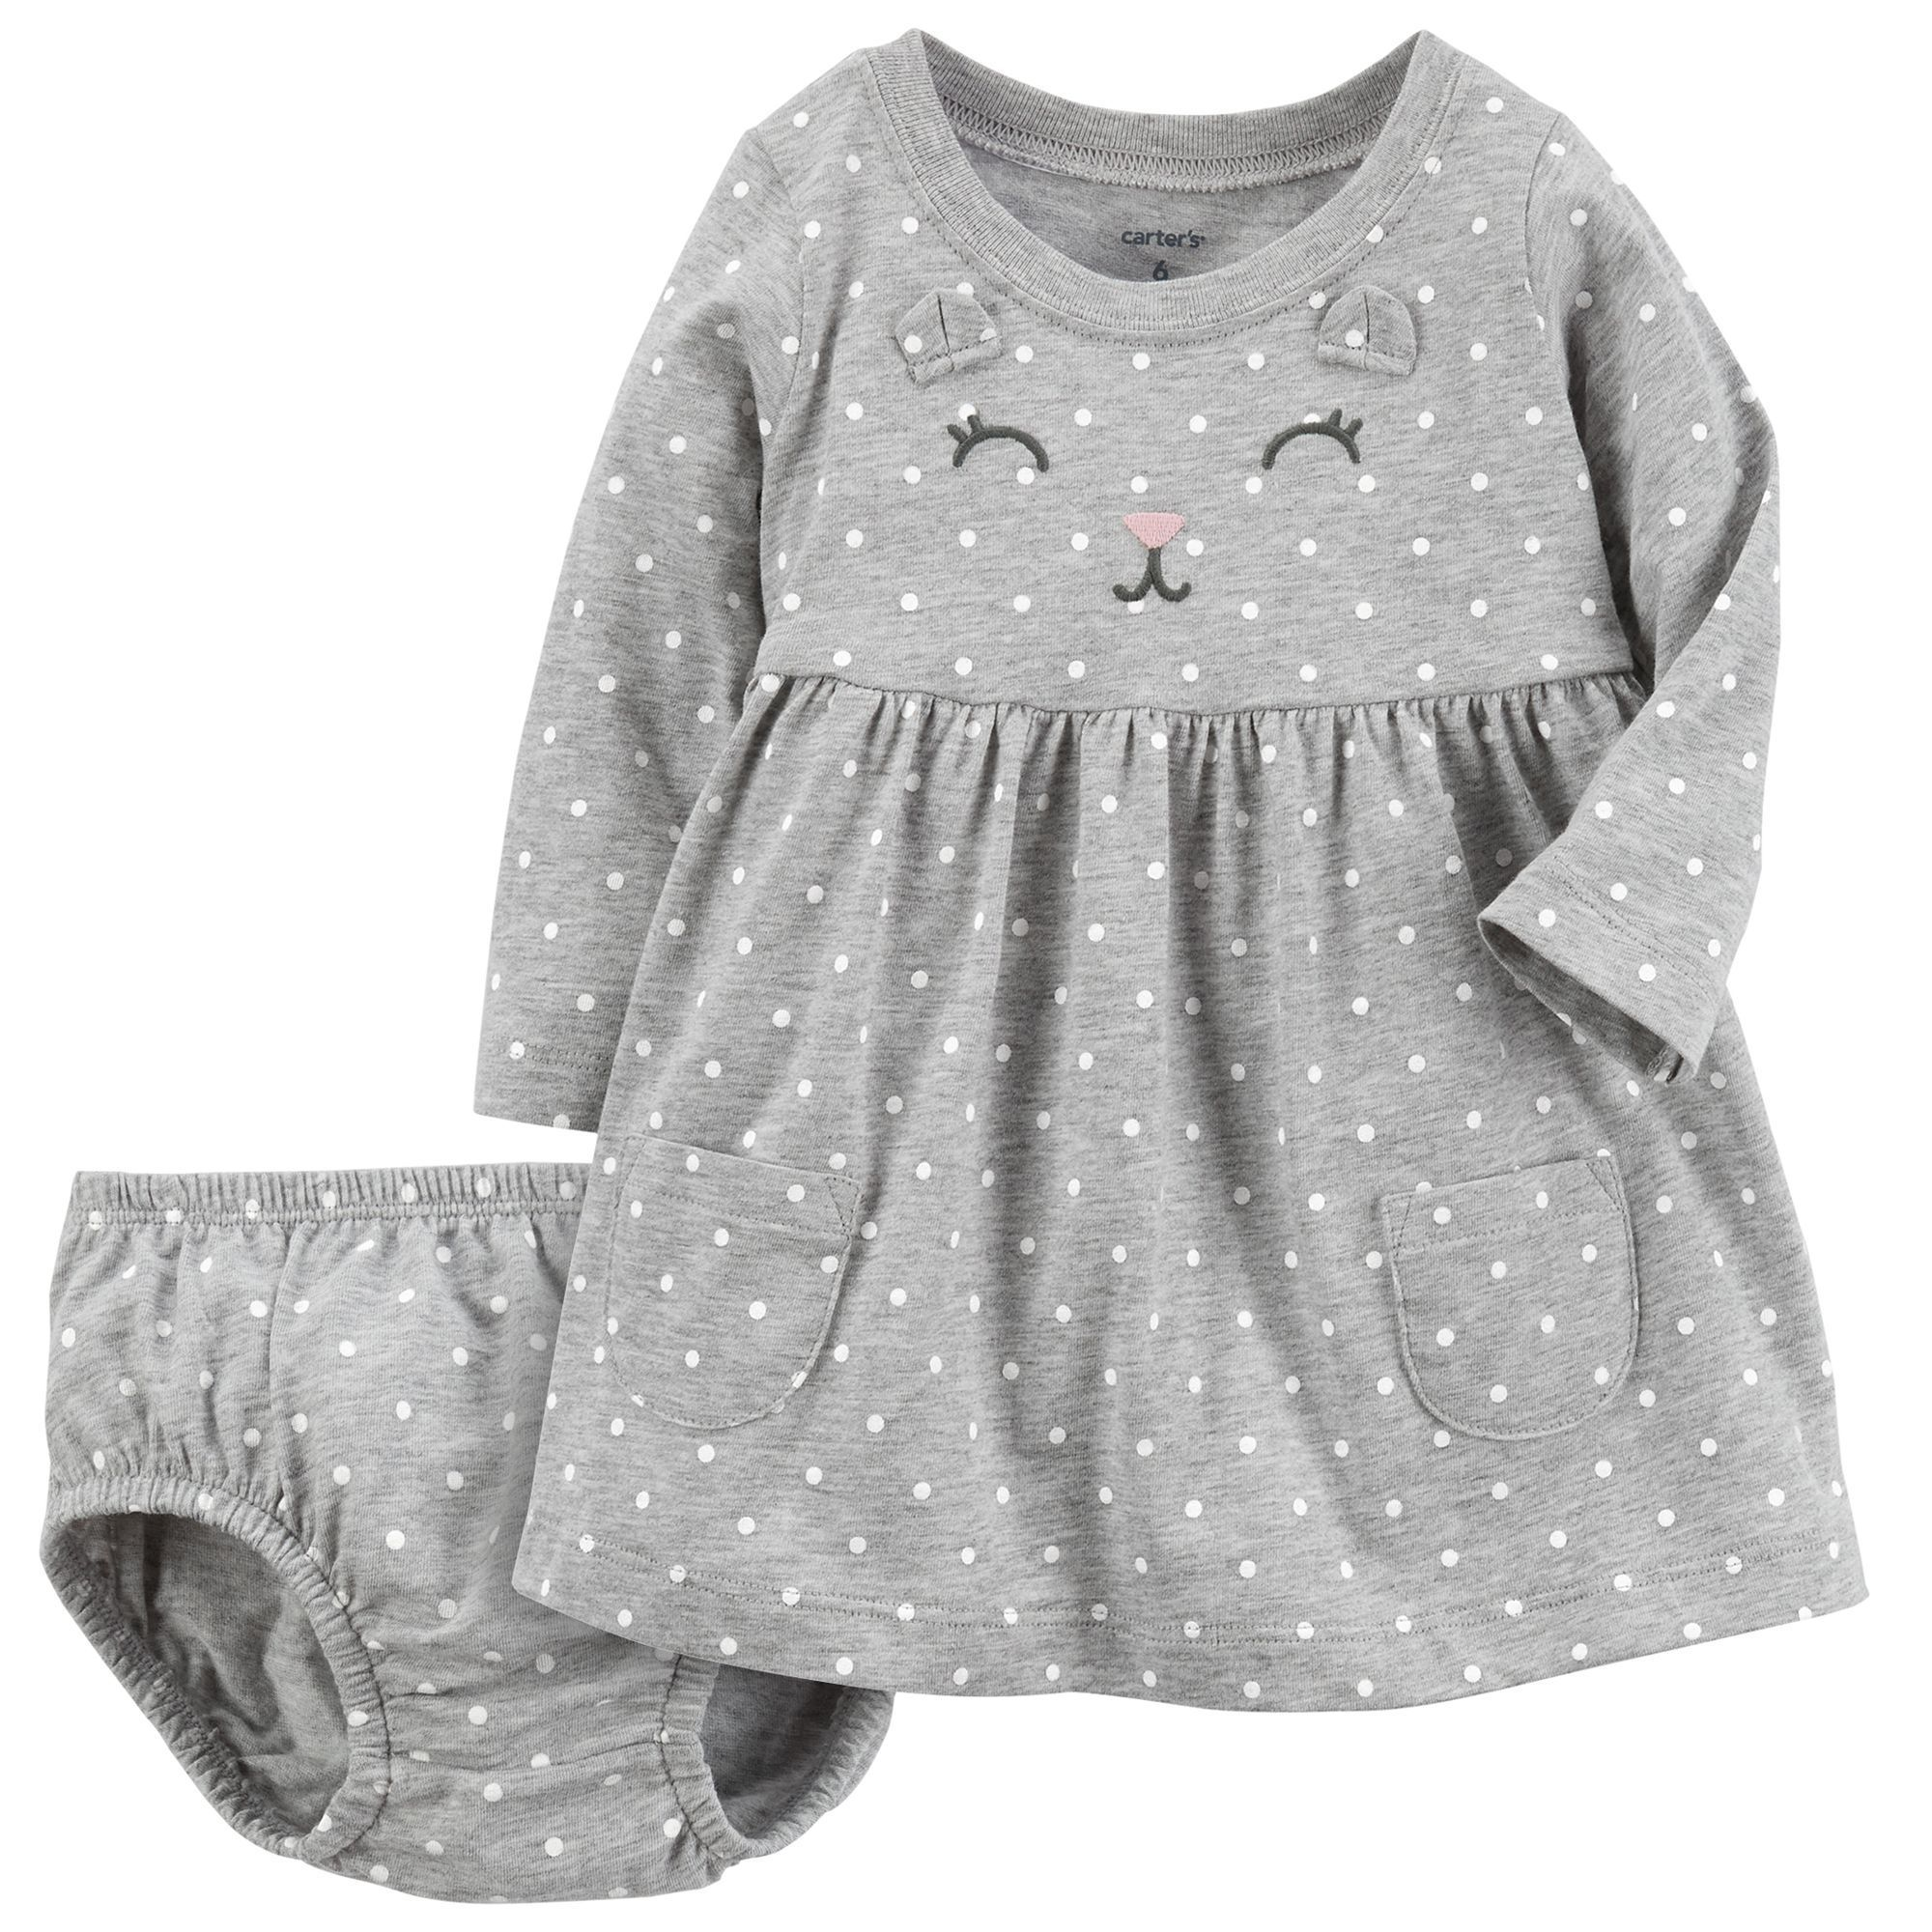 30f6c81dc8 Baby Girl Carter's Gray Cat Dress | Products | Carters baby girl ...